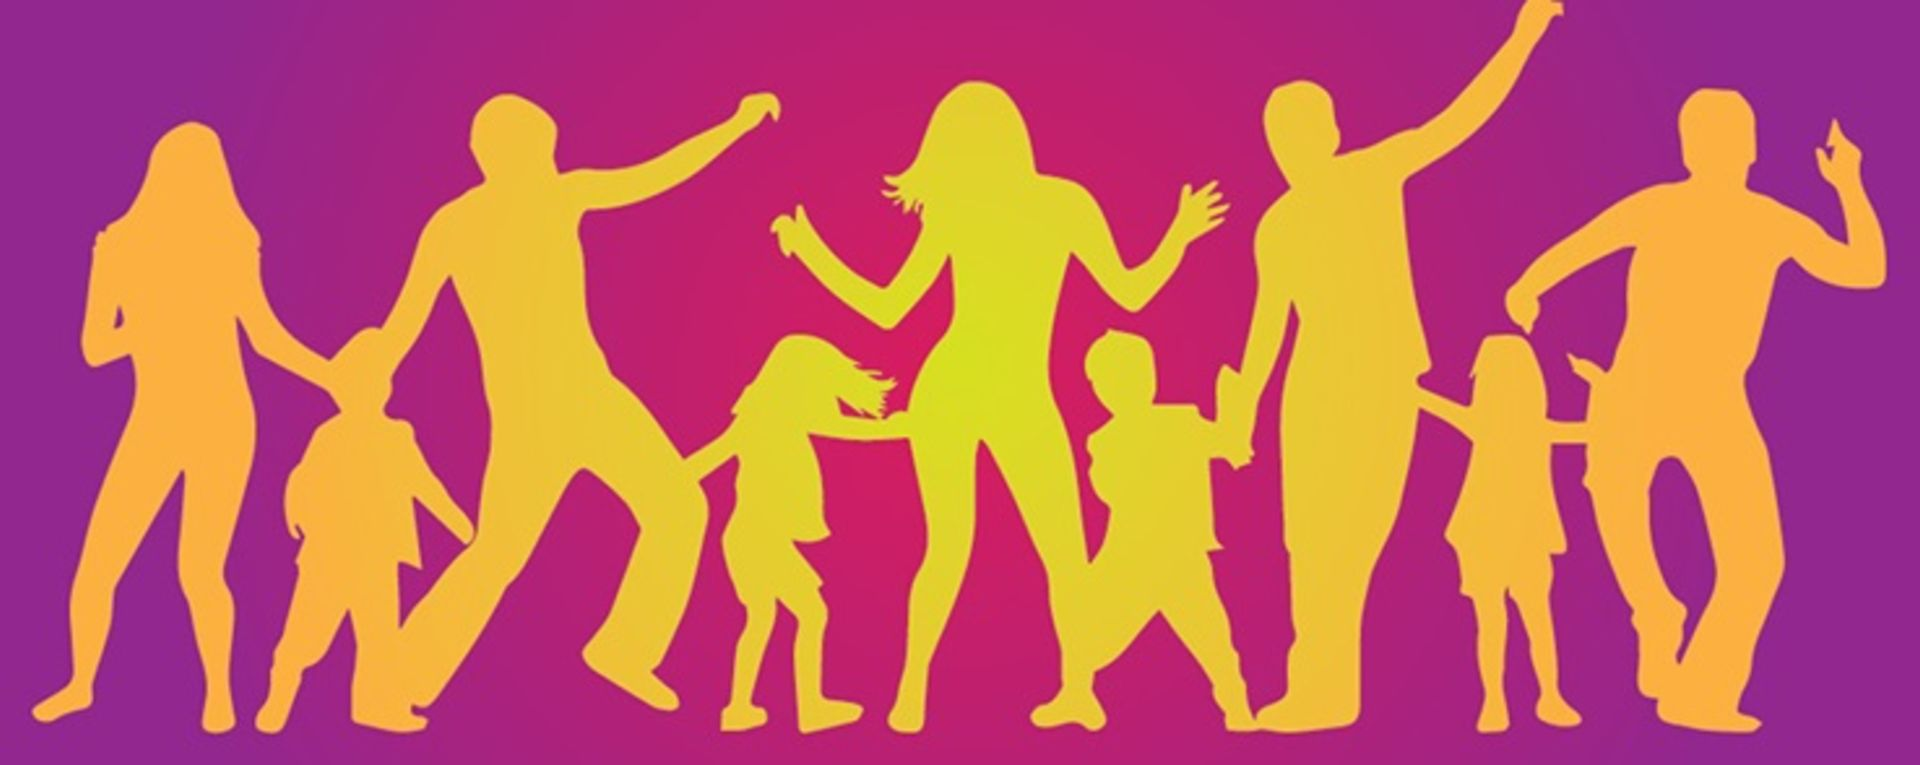 Jamison Realty Presents Family Dance Party – Saturday, February 9, 2019